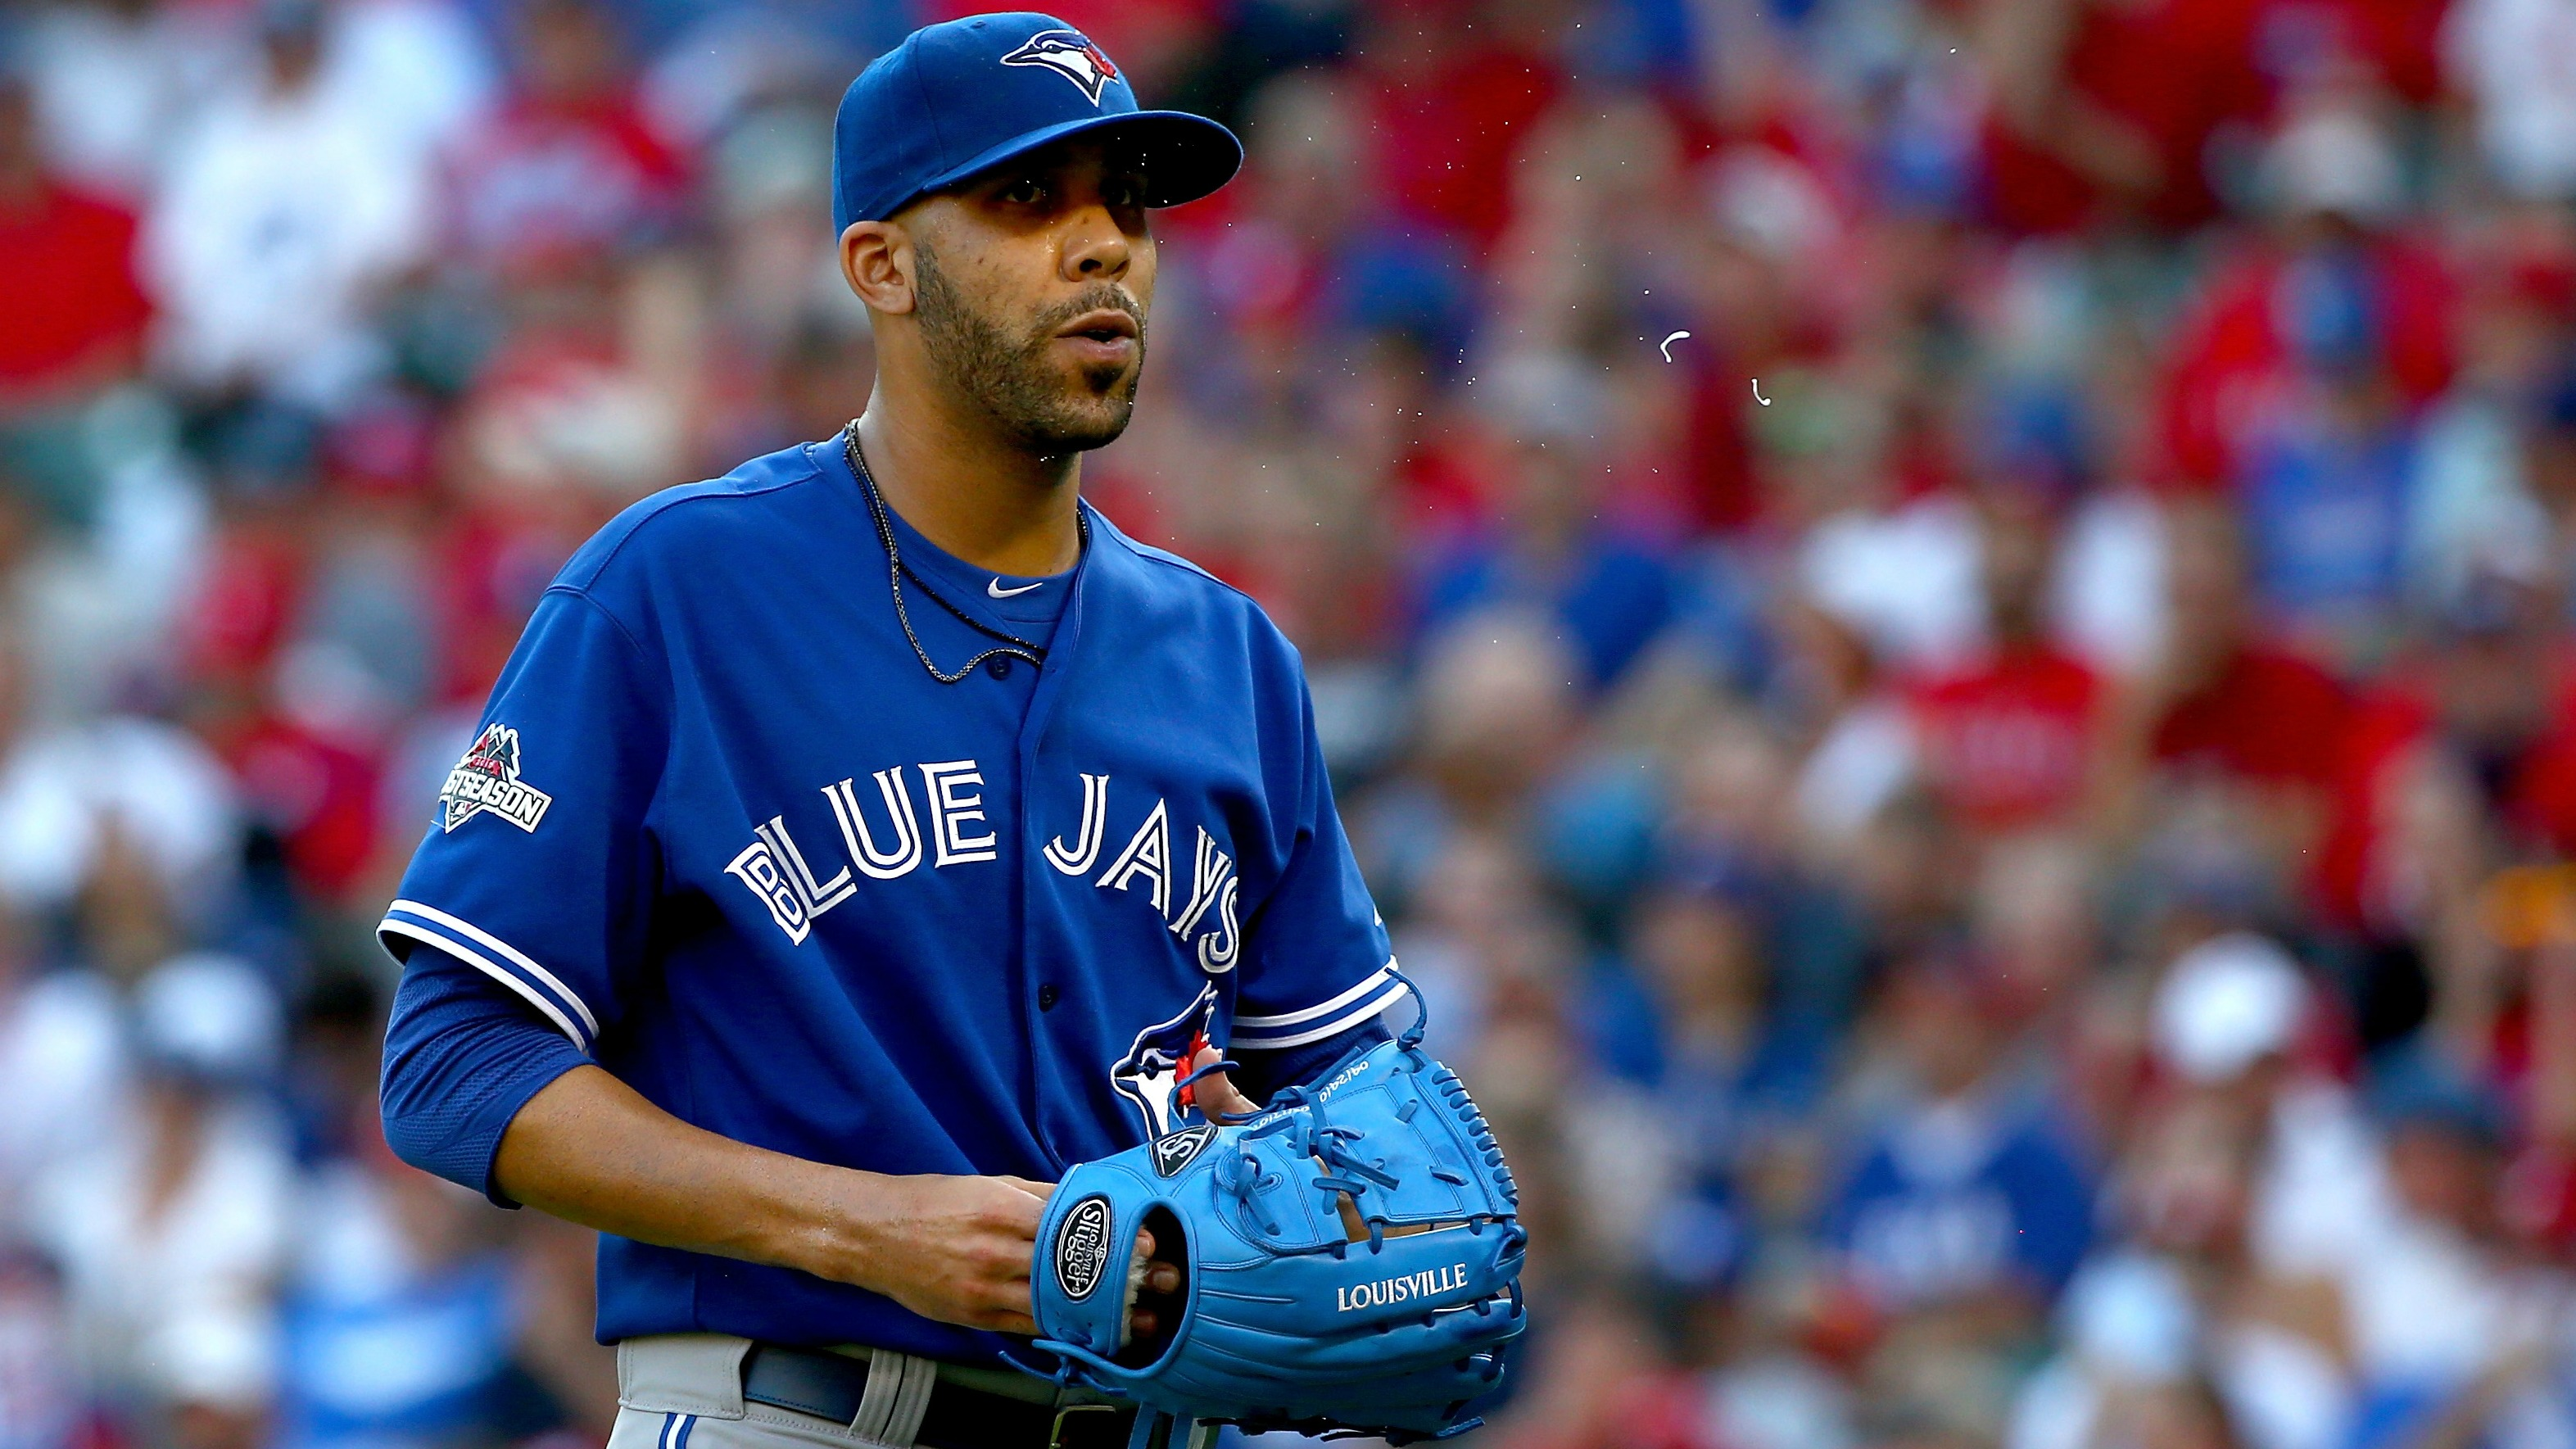 Toronto used David Price out of the bullpen in Game 4 of the ALDS, raising questions about the ace's status.